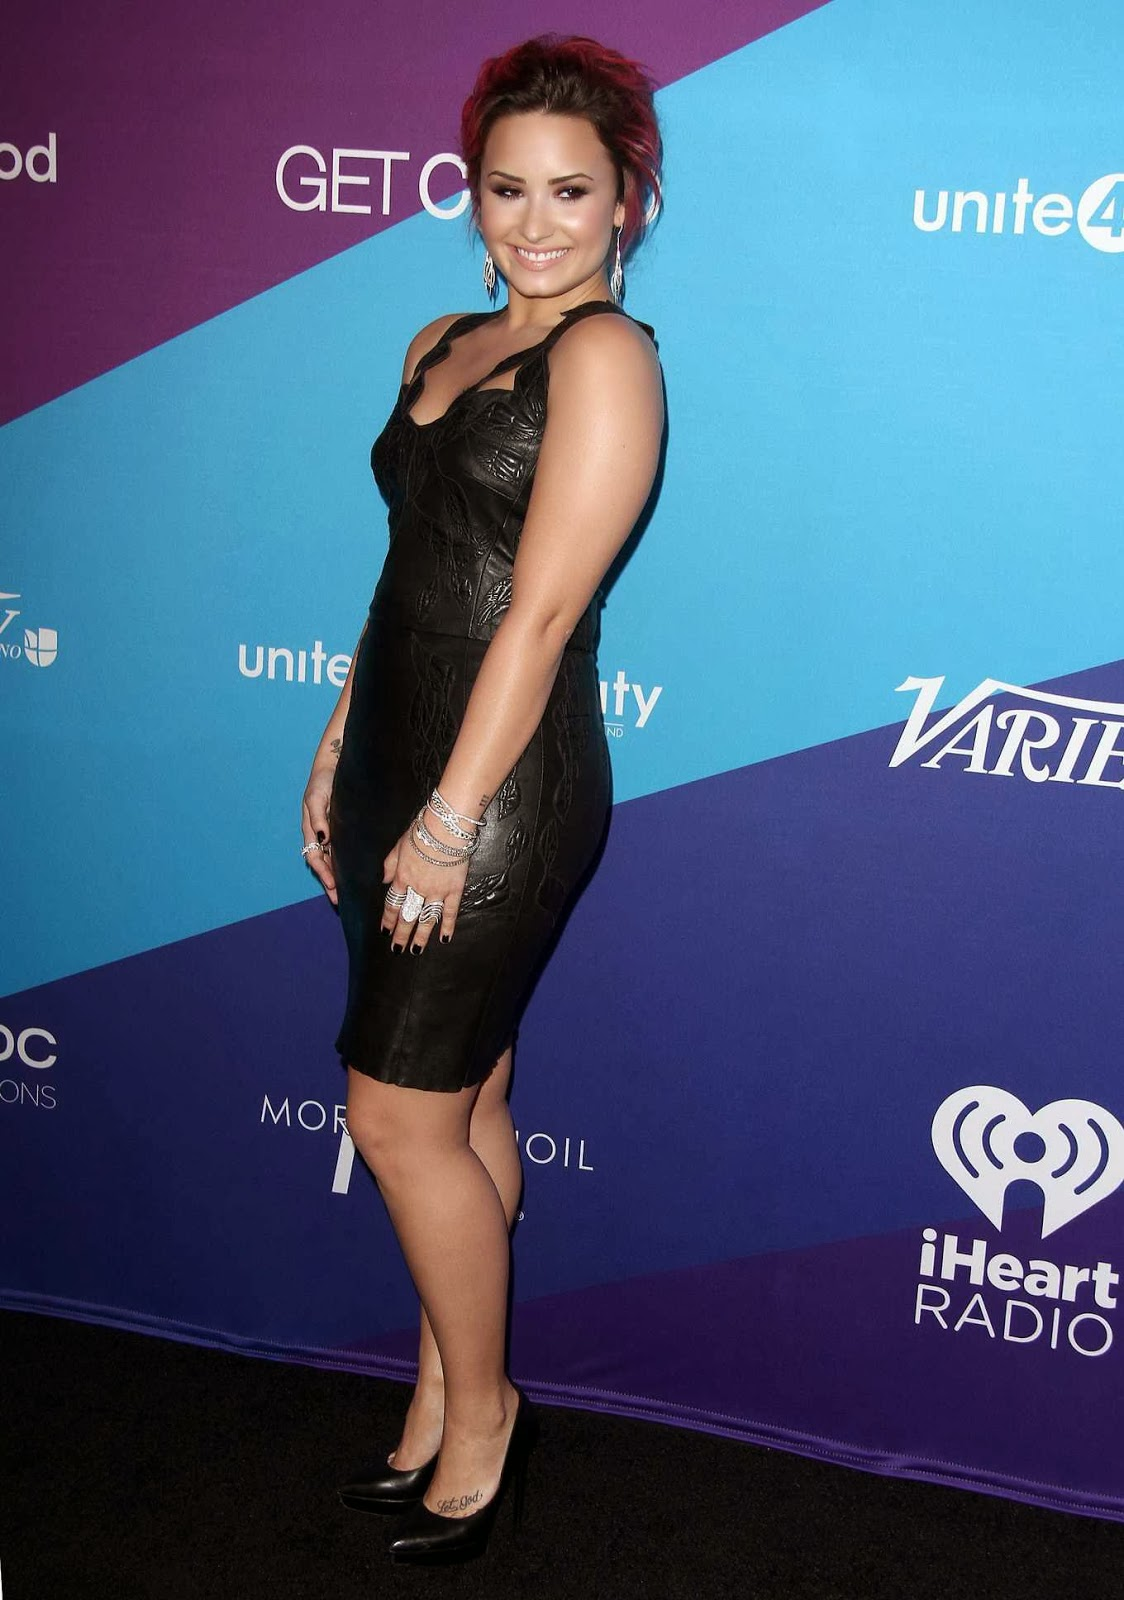 Demi Lovato wearing tight black leather mini dress at 2014 : humanity Gala in Culver City